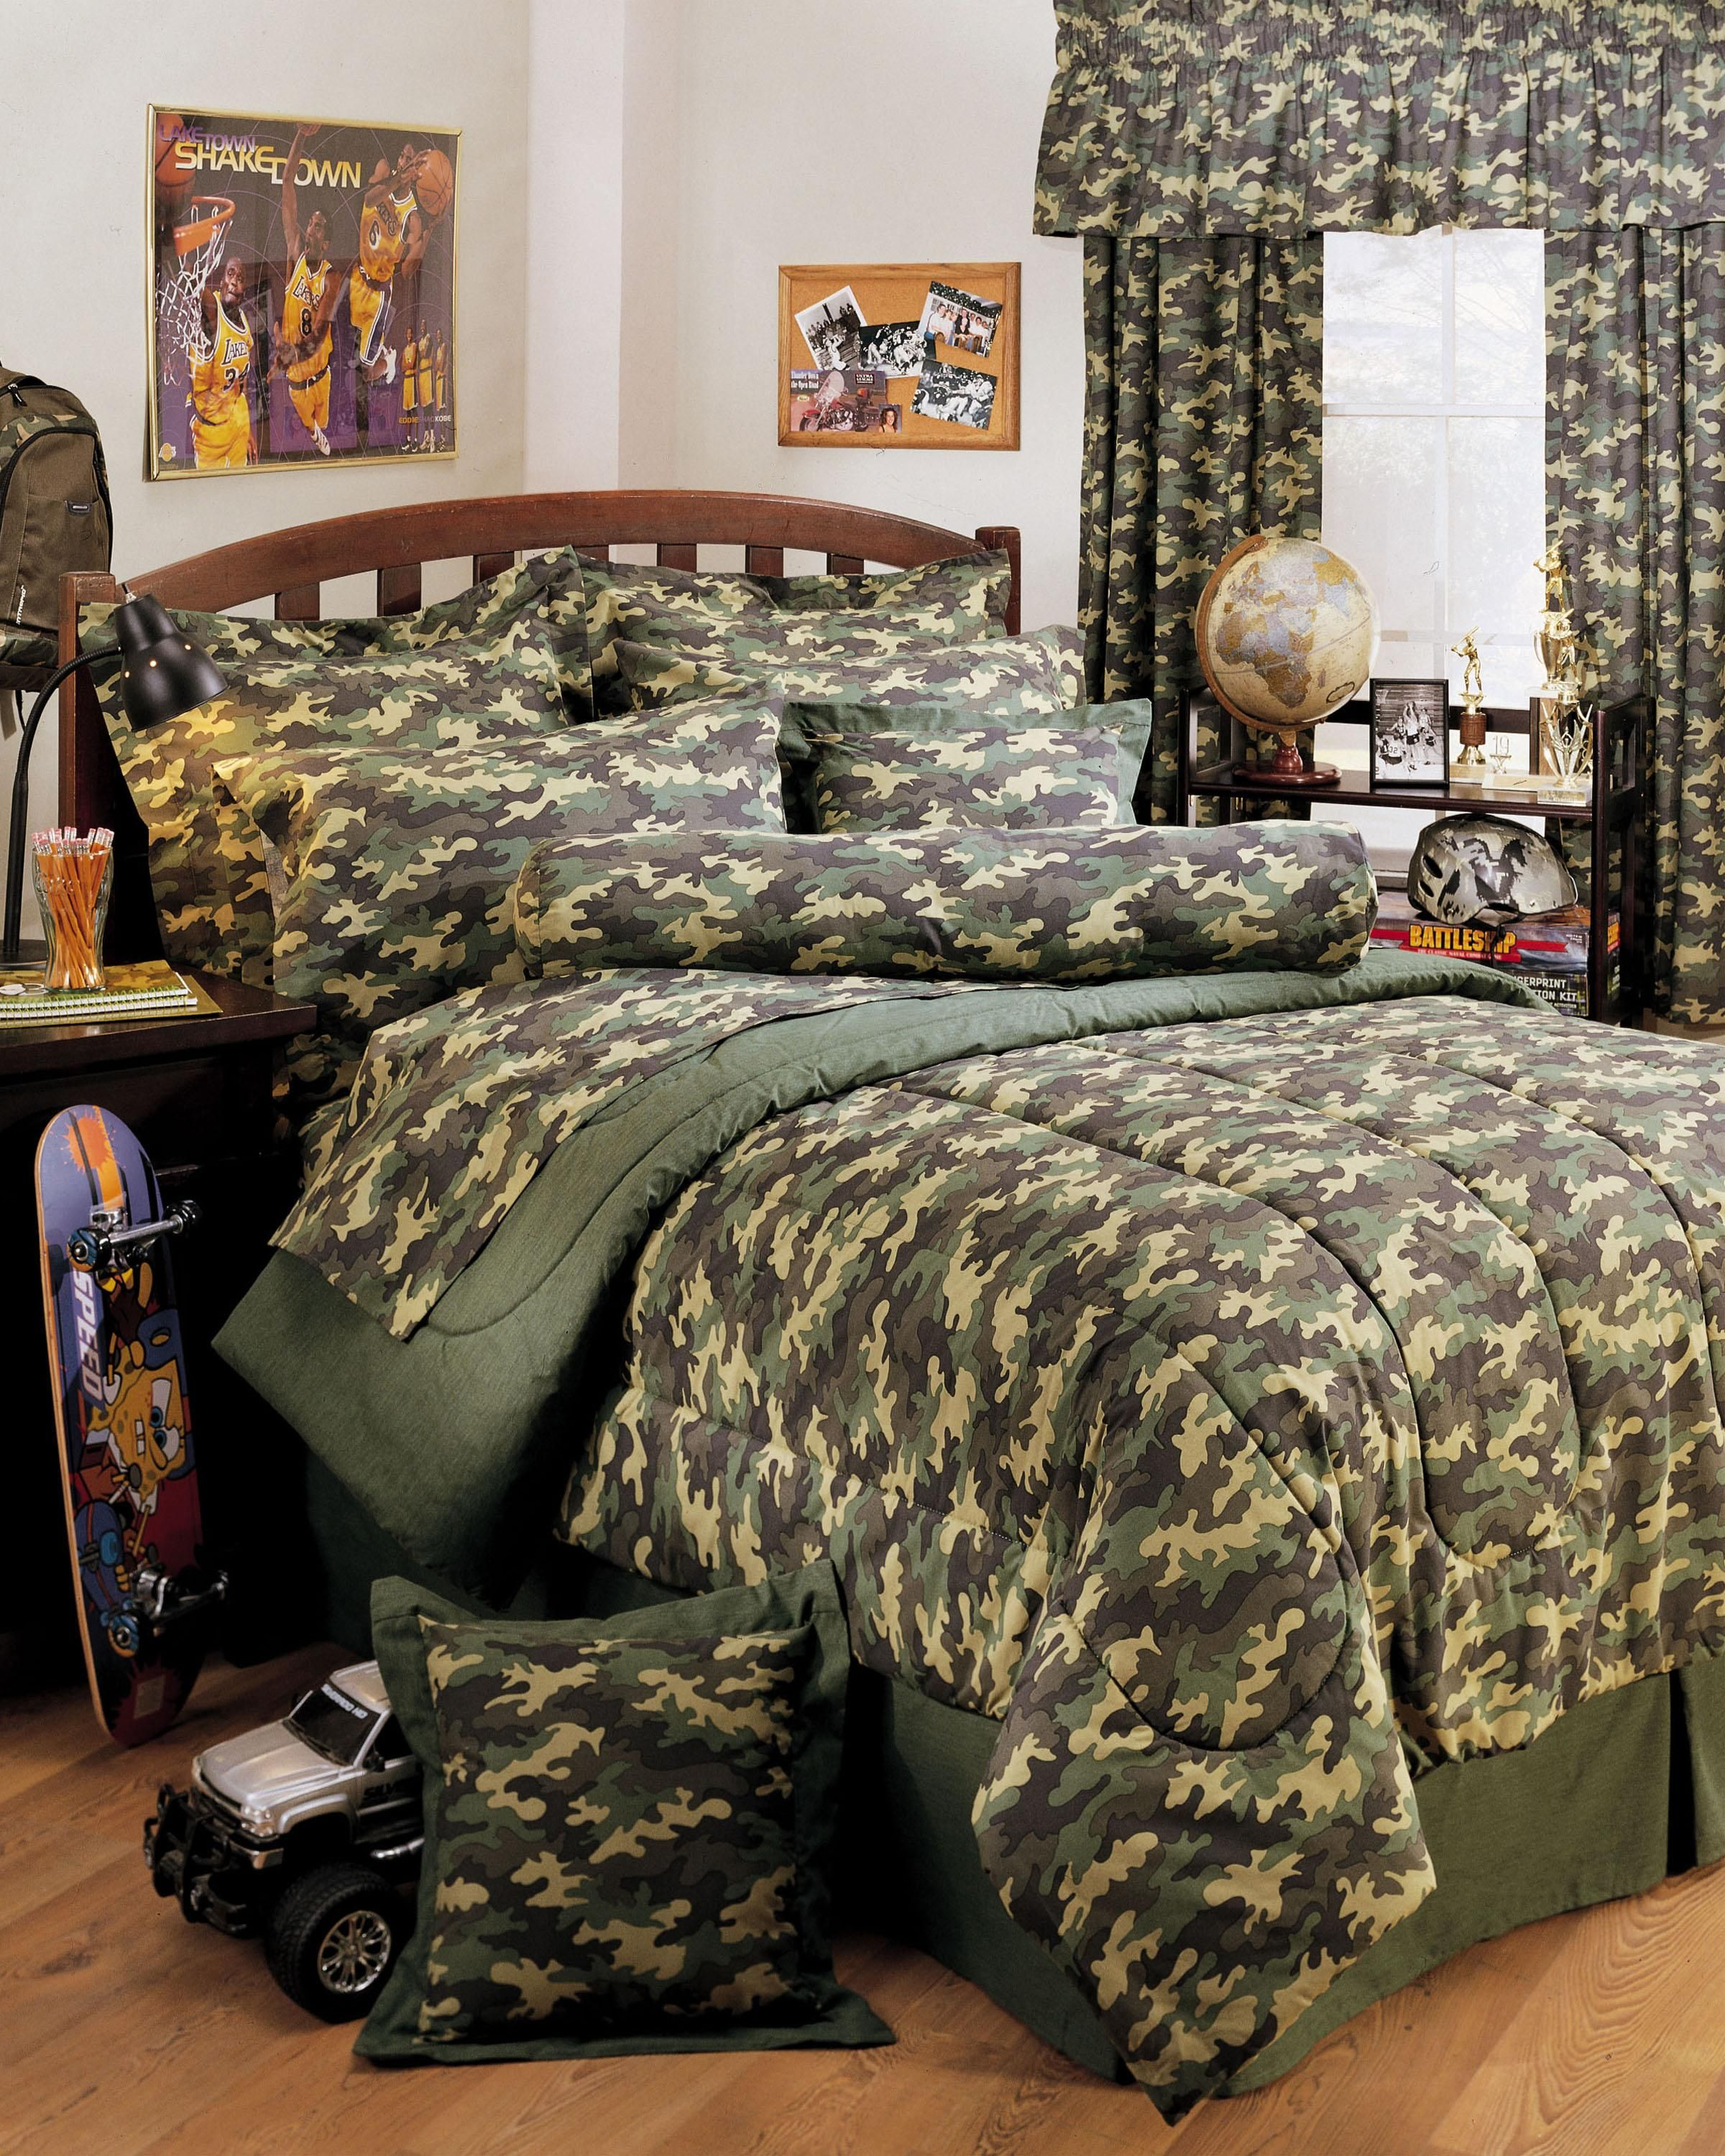 Camouflage Room Decor For Kids6